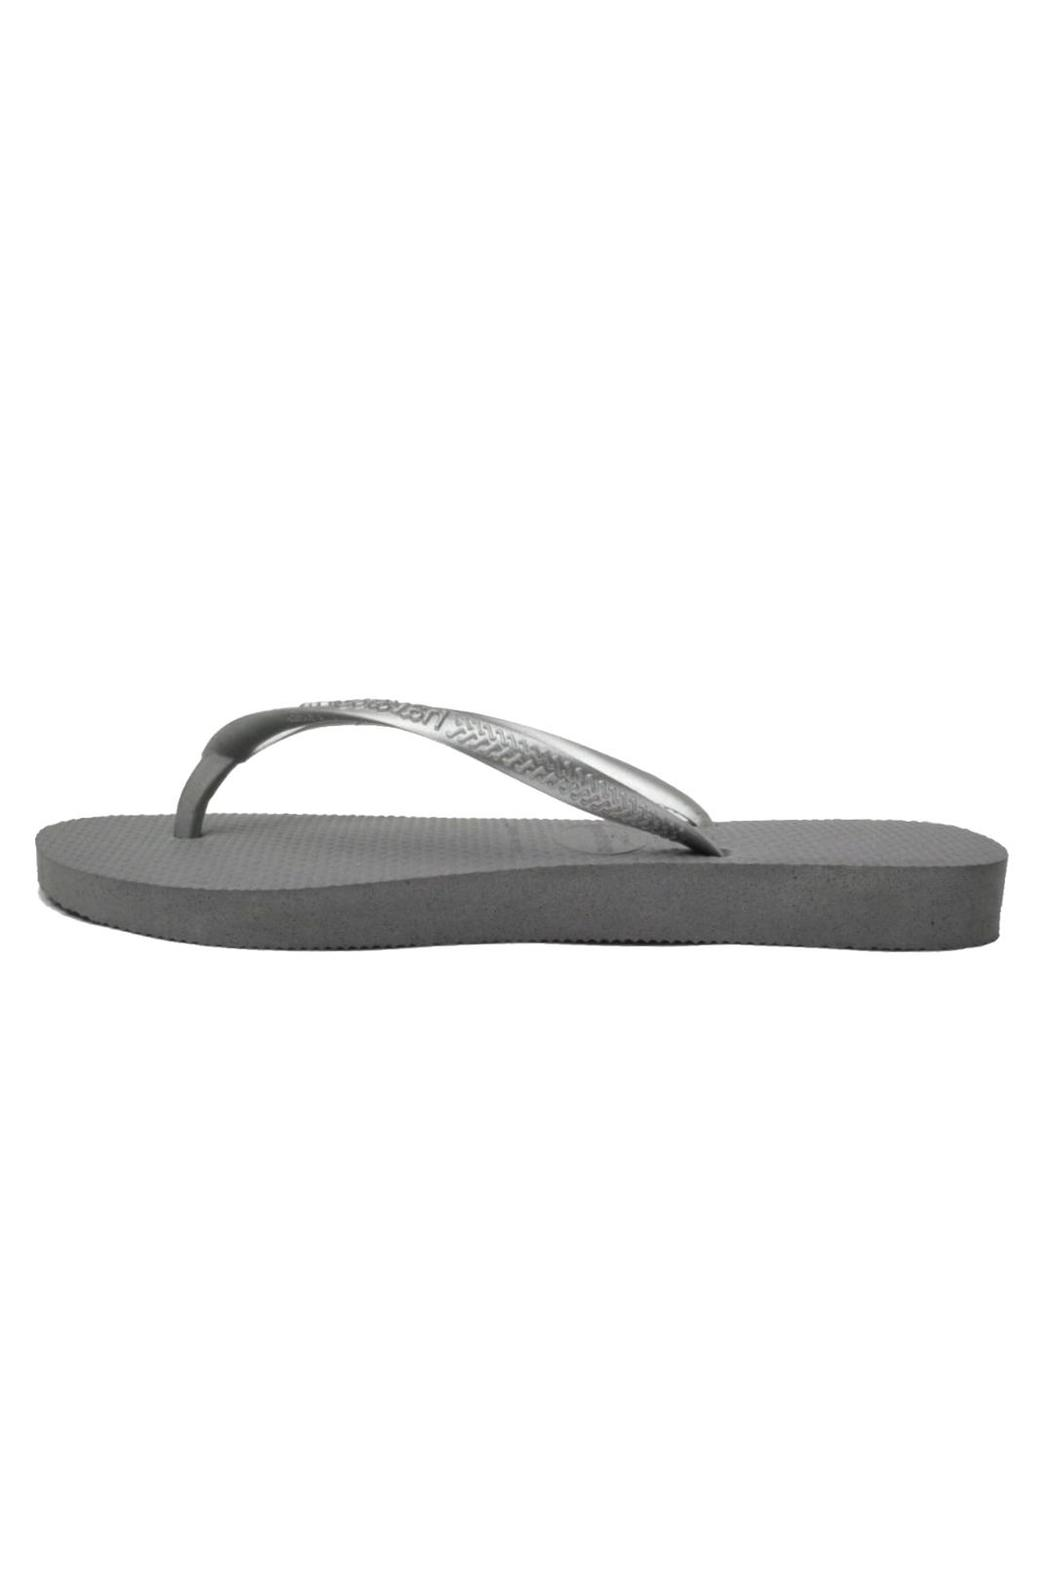 5bd961ab385728 Havaianas Slim Flip Flop from California by That s Cherry — Shoptiques